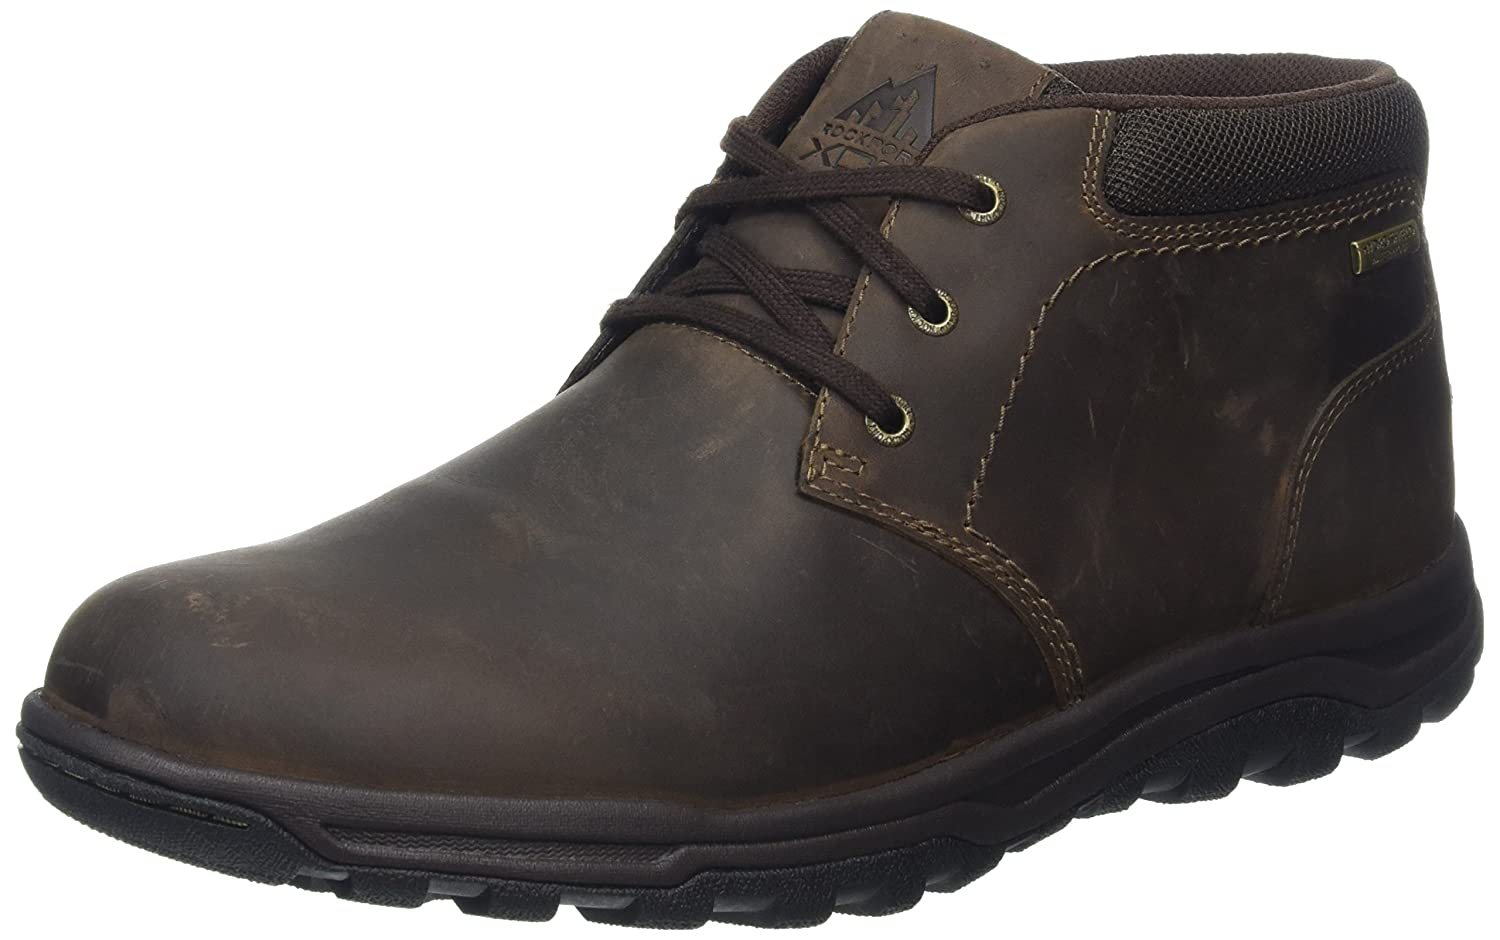 TALLA 44 EU. Rockport Trail Technique Waterproof Mid, Botas Desert para Hombre